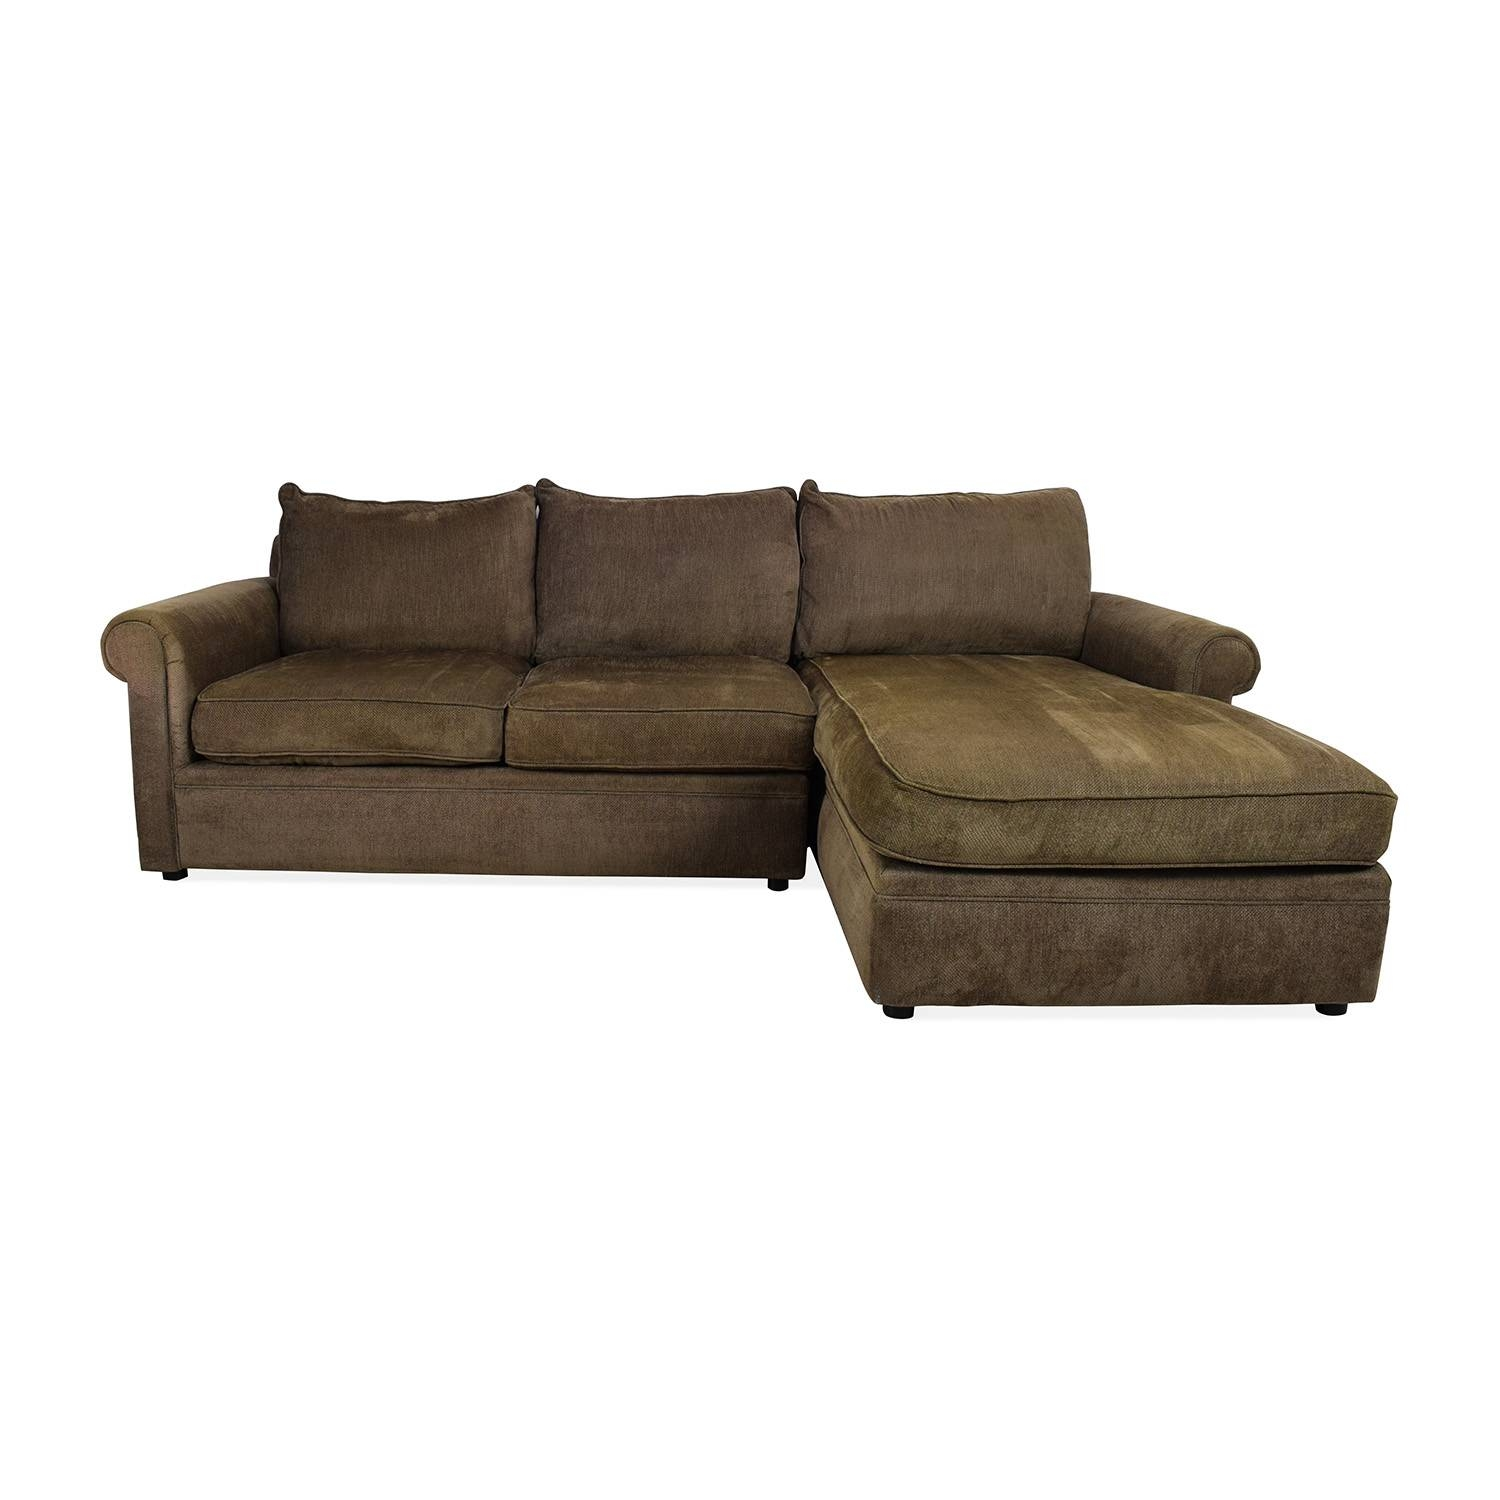 83% Off - Bloomingdales Bloomingdale's Sectional / Sofas intended for Bloomingdales Sofas (Image 9 of 15)